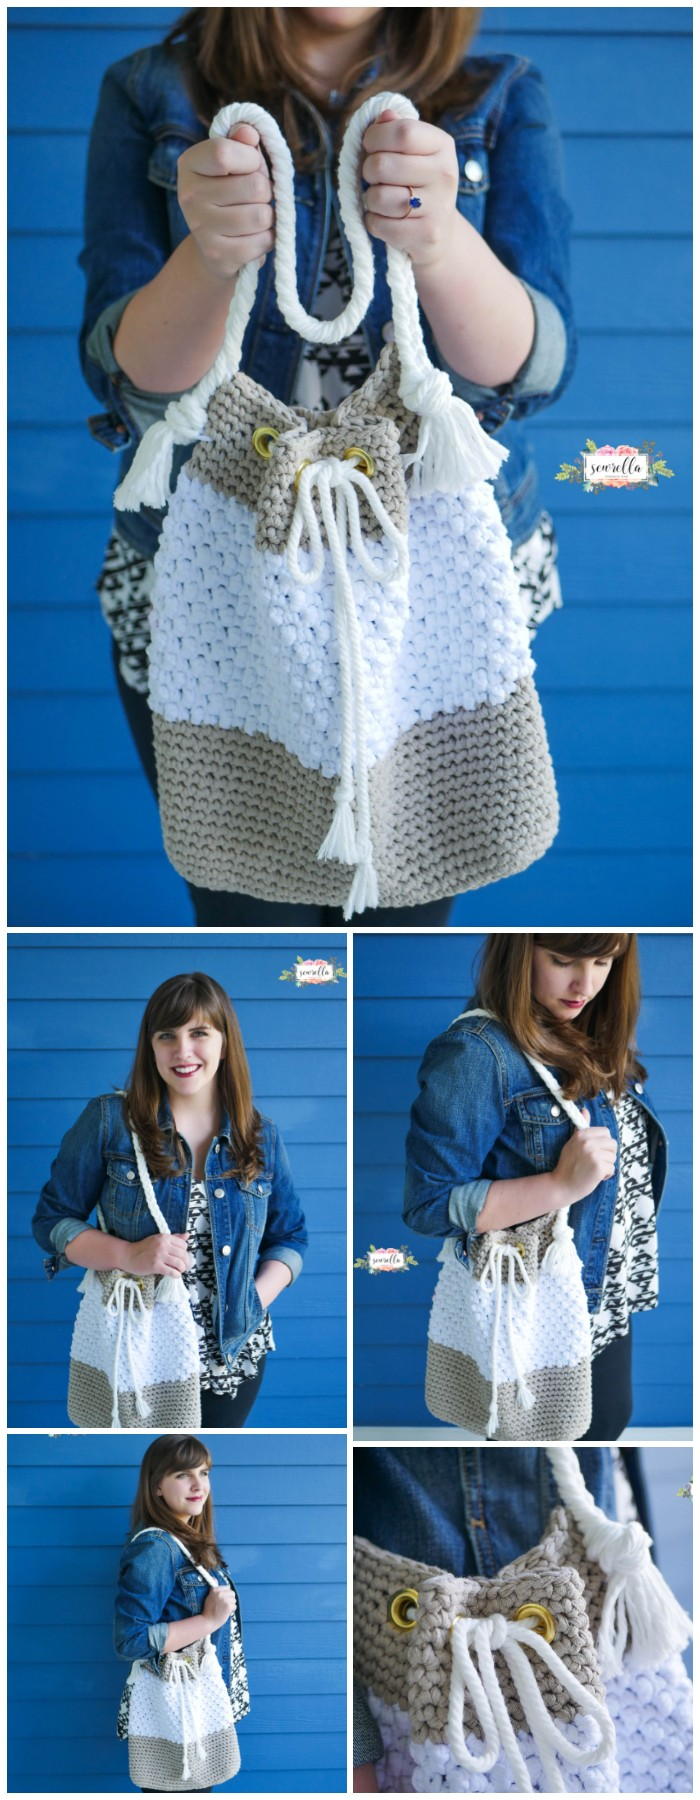 The Mykonos Crochet Bag